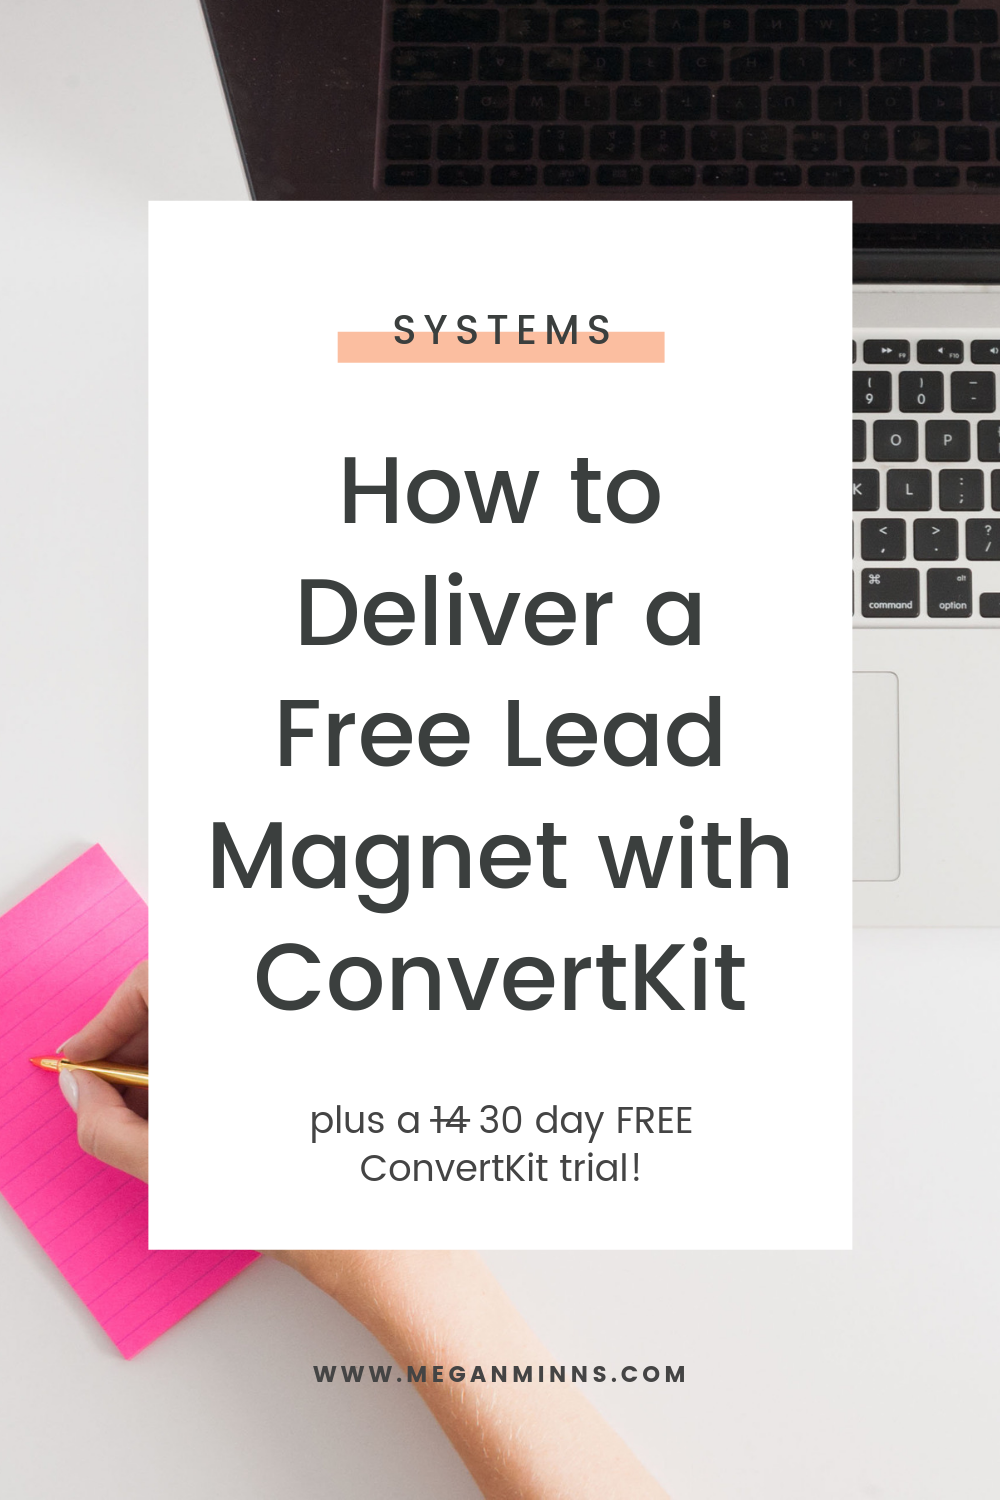 Things about Convertkit Trial